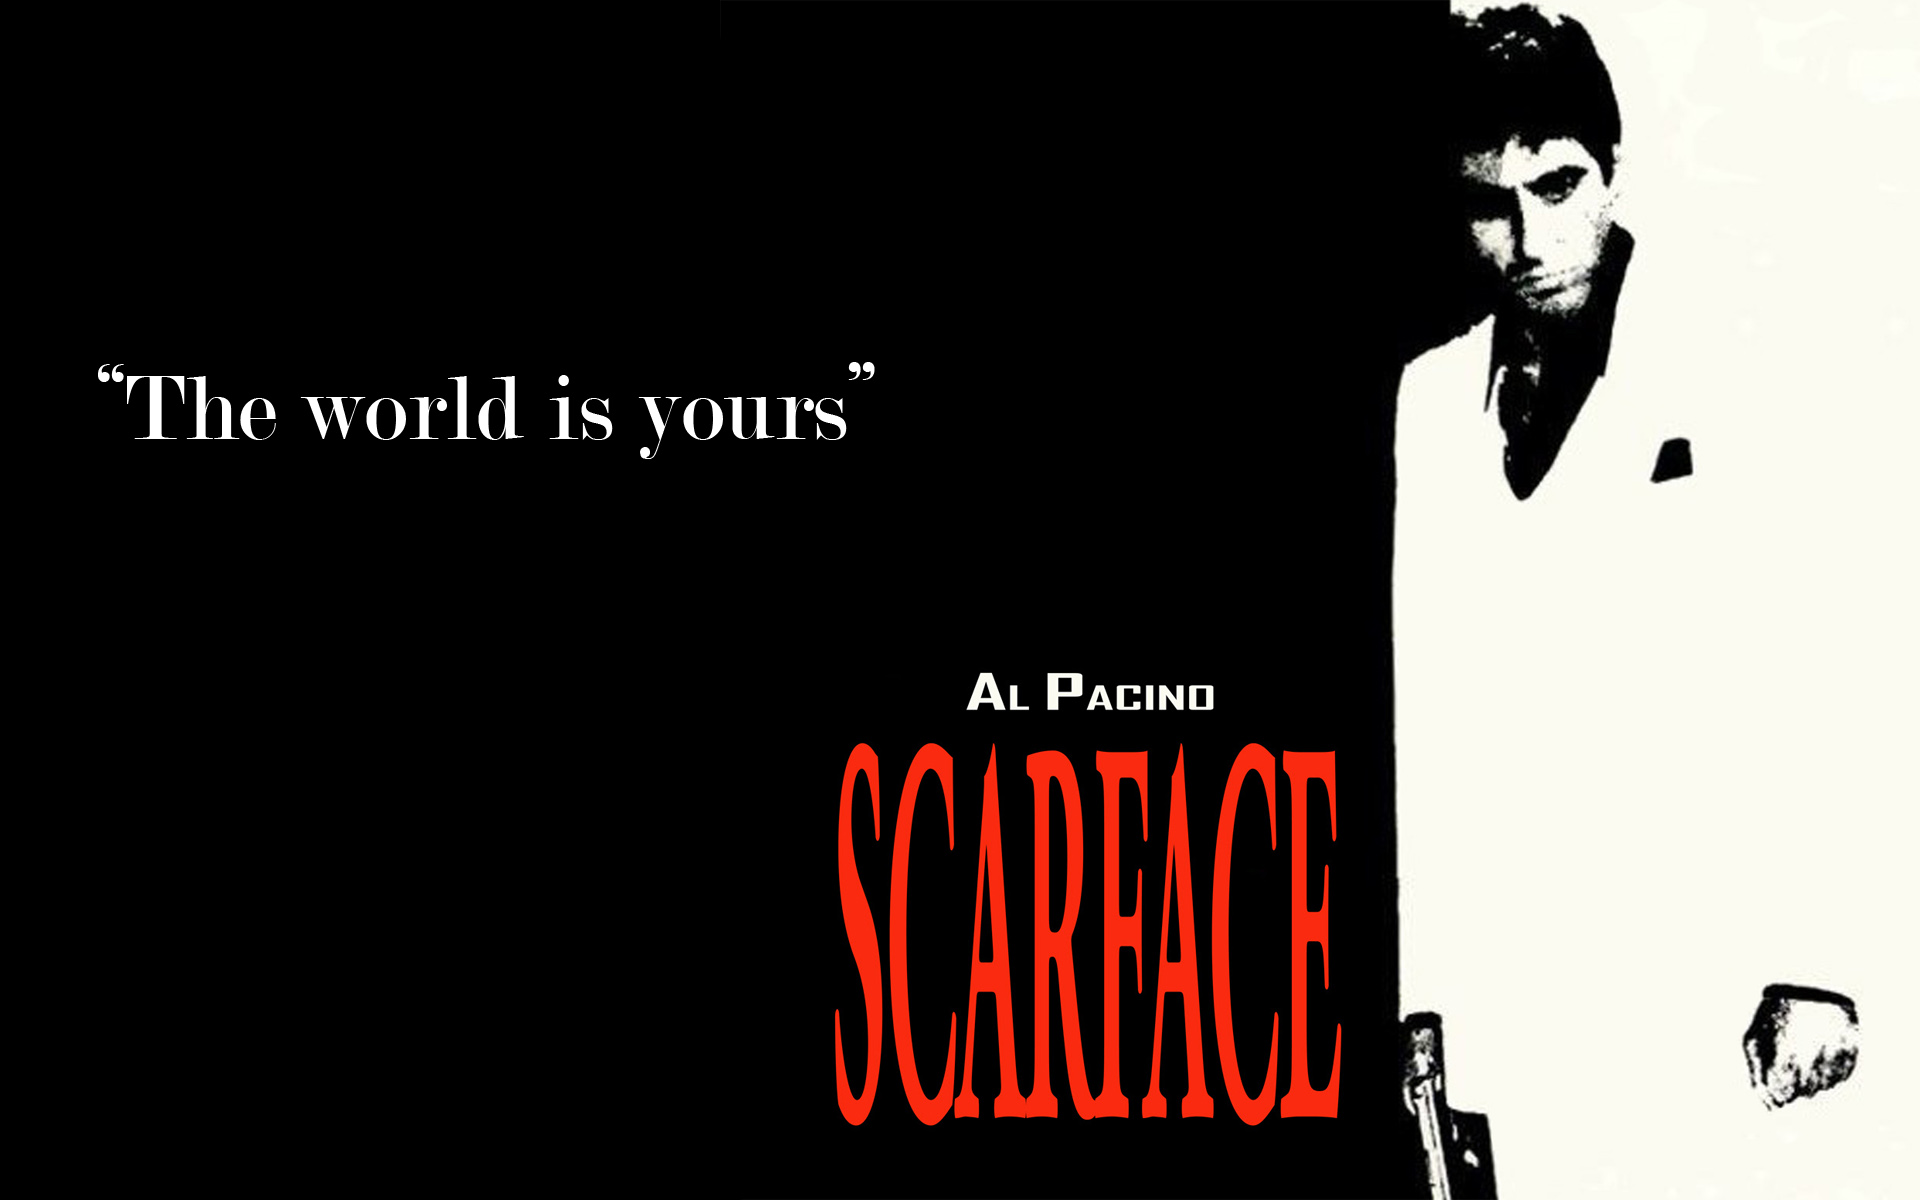 Scarface Phone Wallpaper 1920x1200